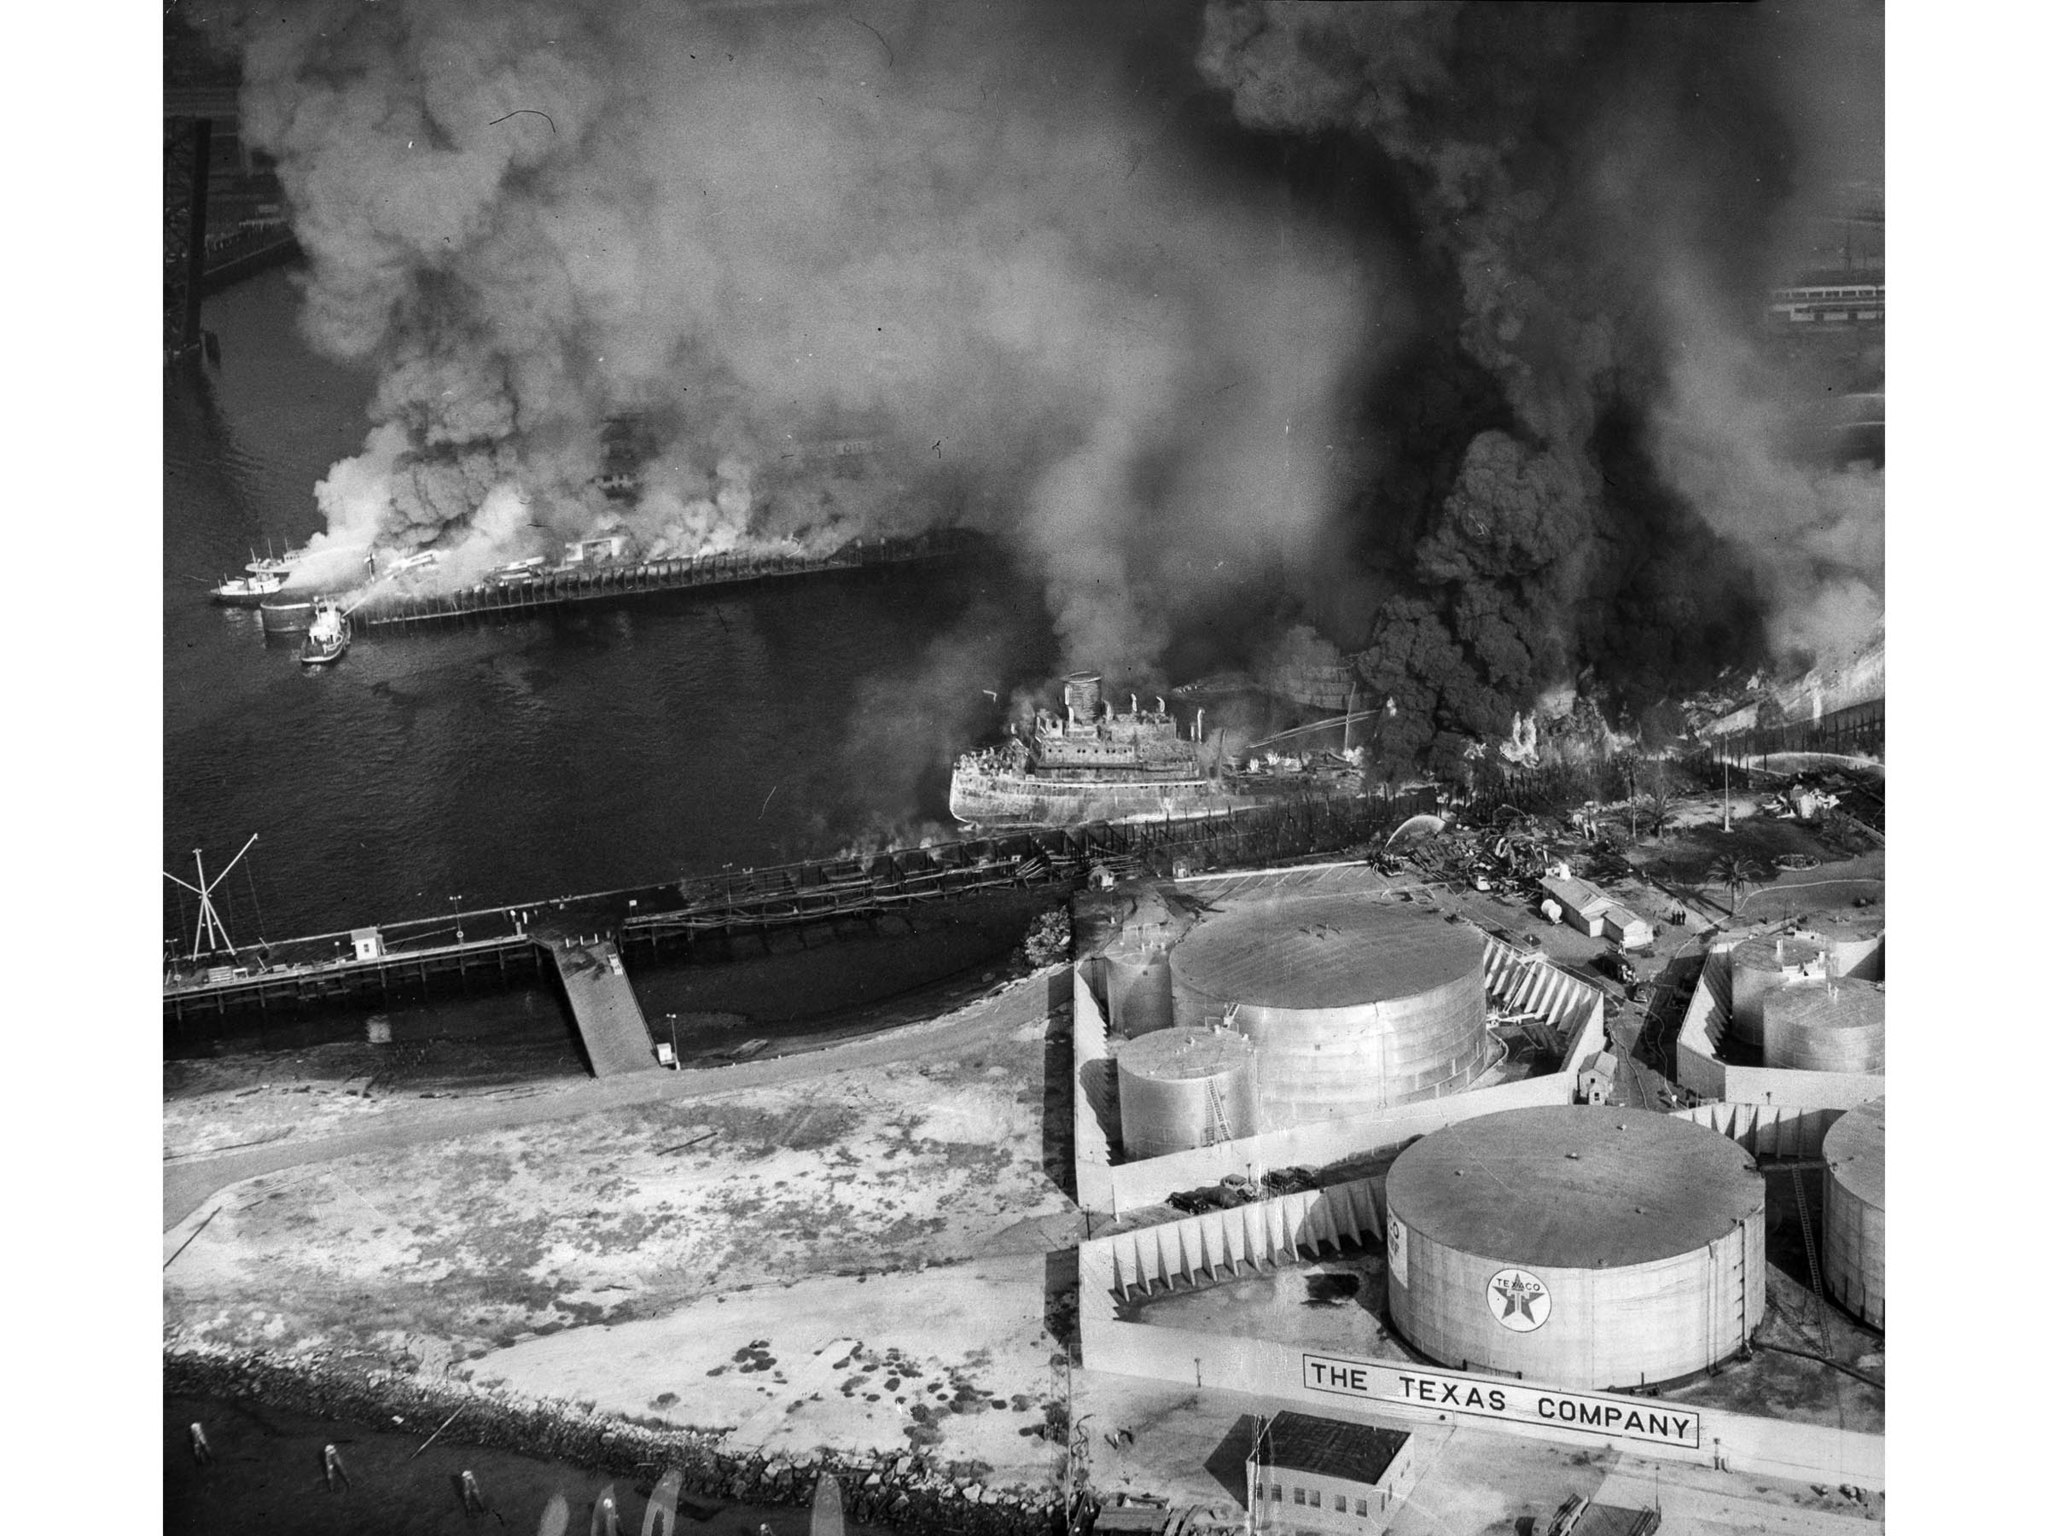 June 22, 1947: The Markay, along dock in channel, burns close to Texas Co. oil storage taks in foreg